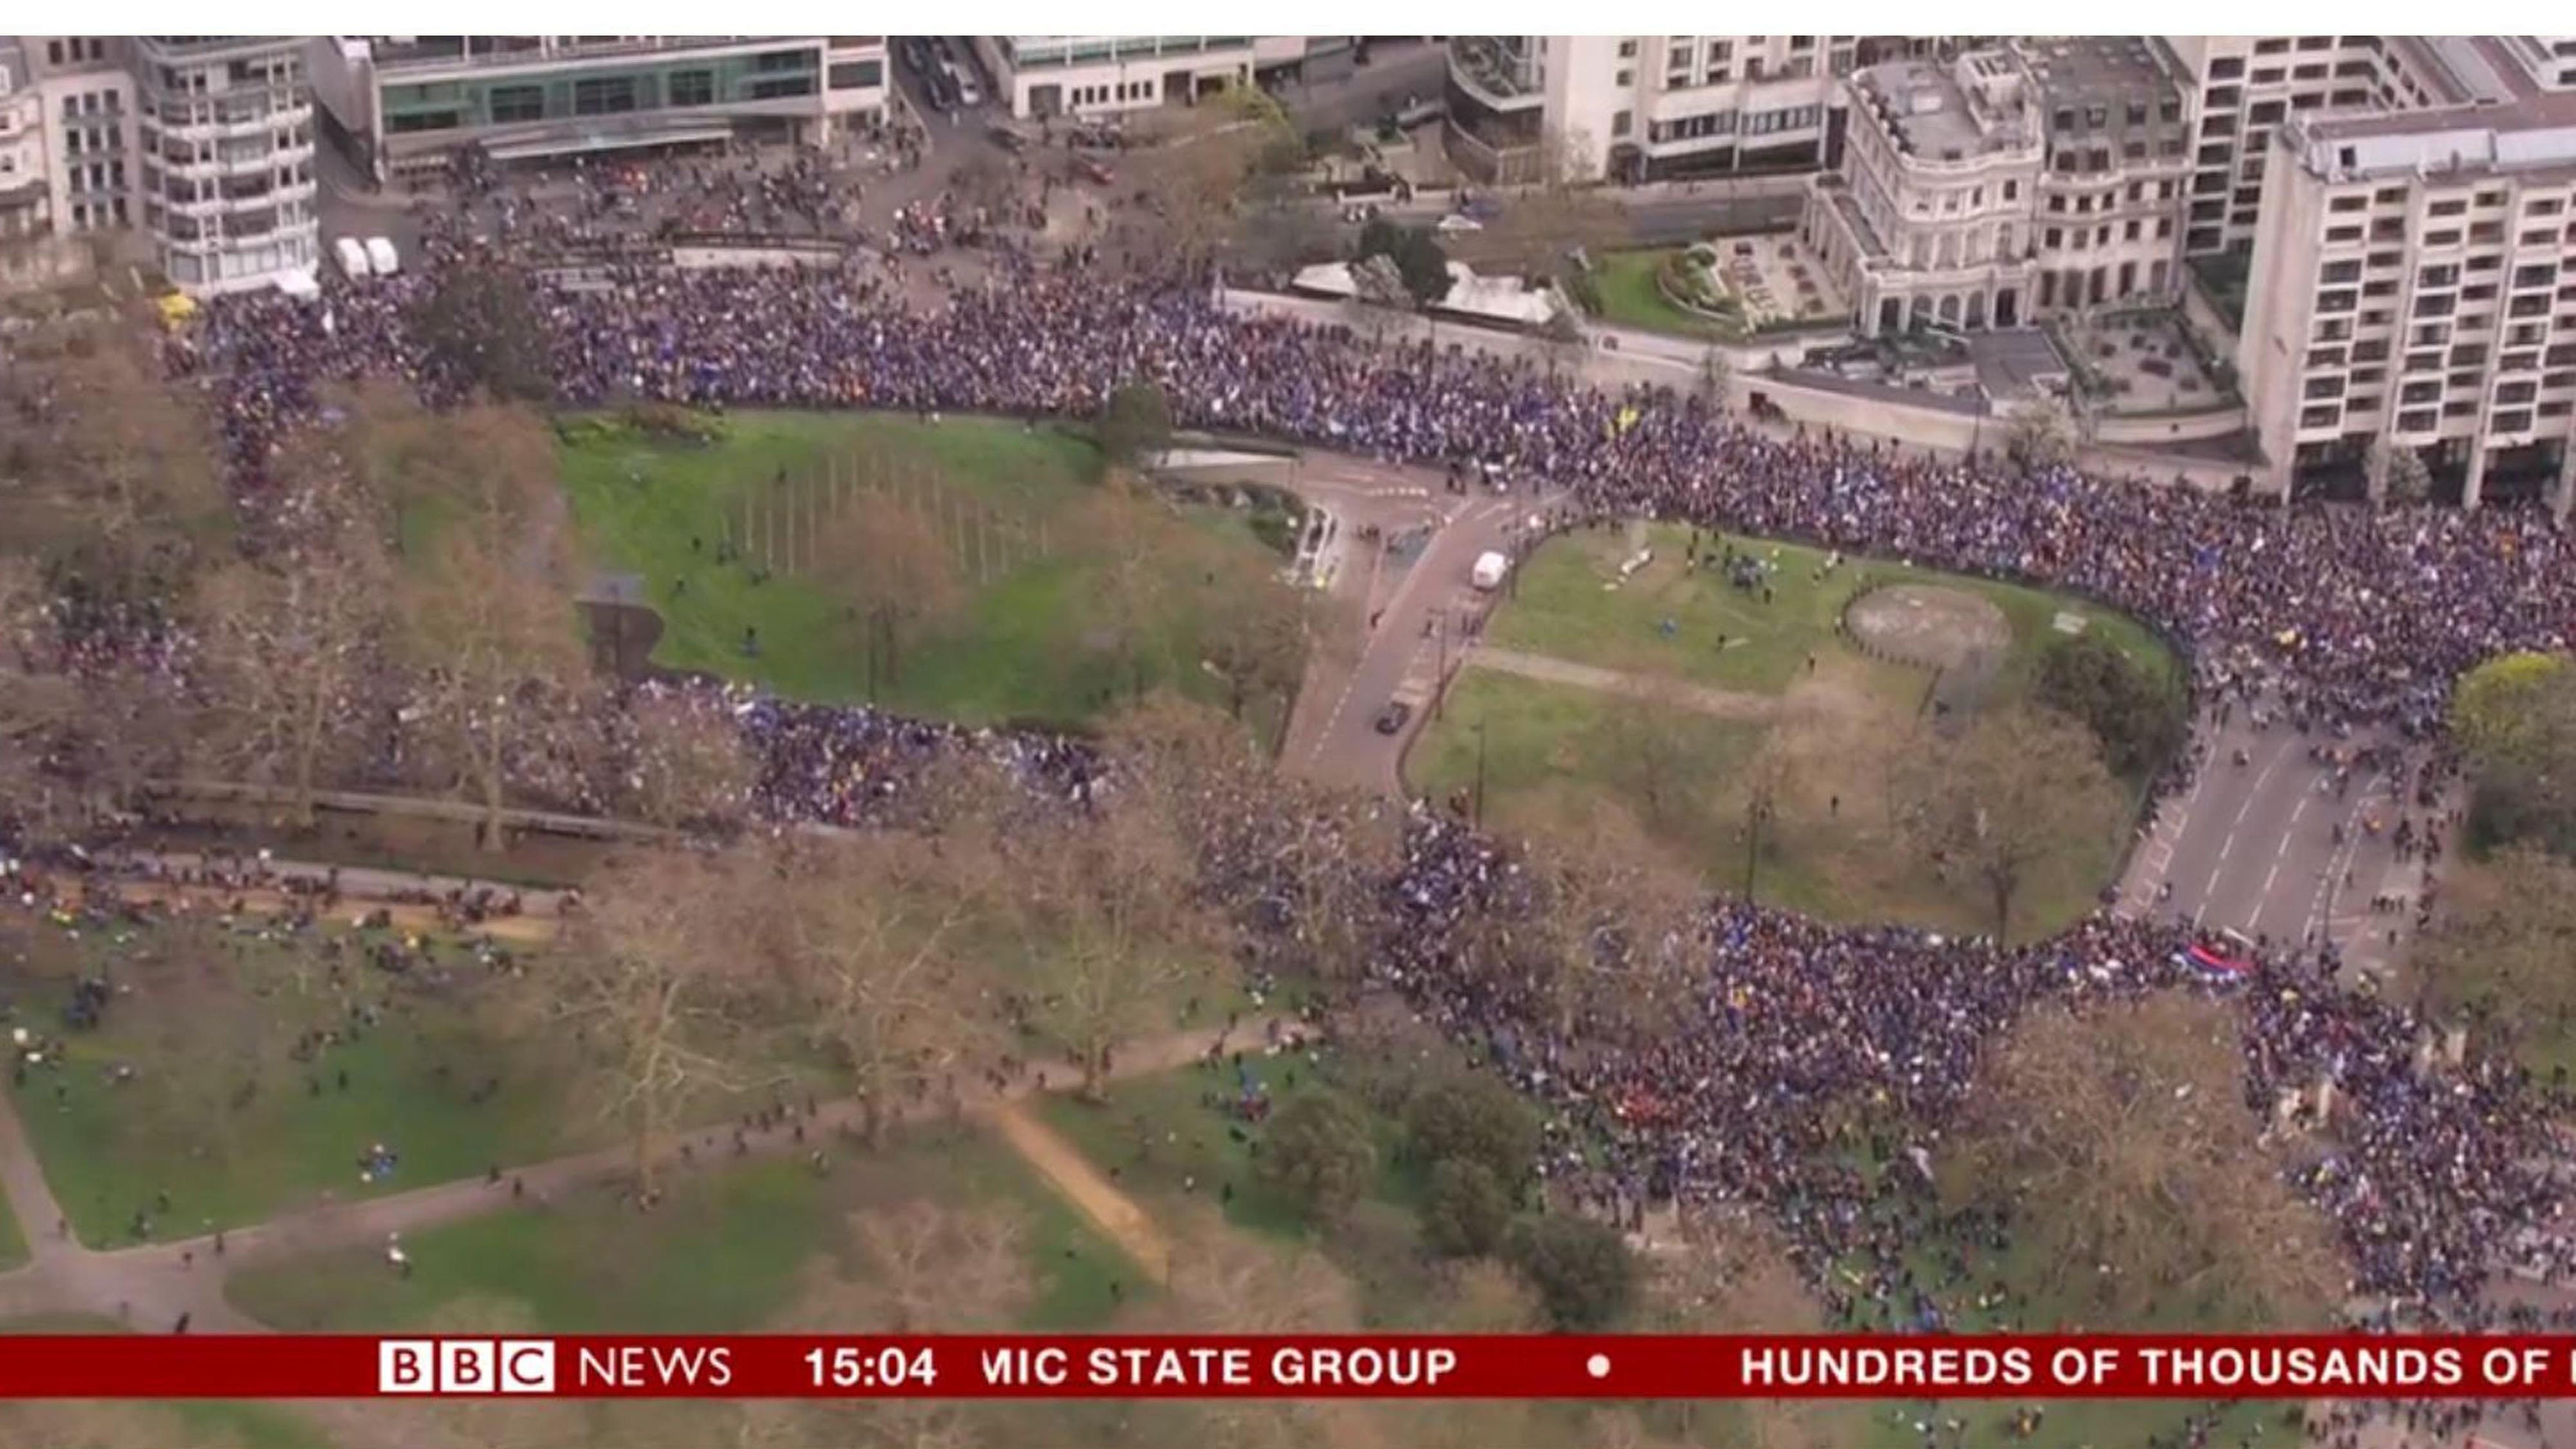 Screengrab taken from BBC News of an aerial view of the anti-Brexit campaigners marching in London (BBC/PA)